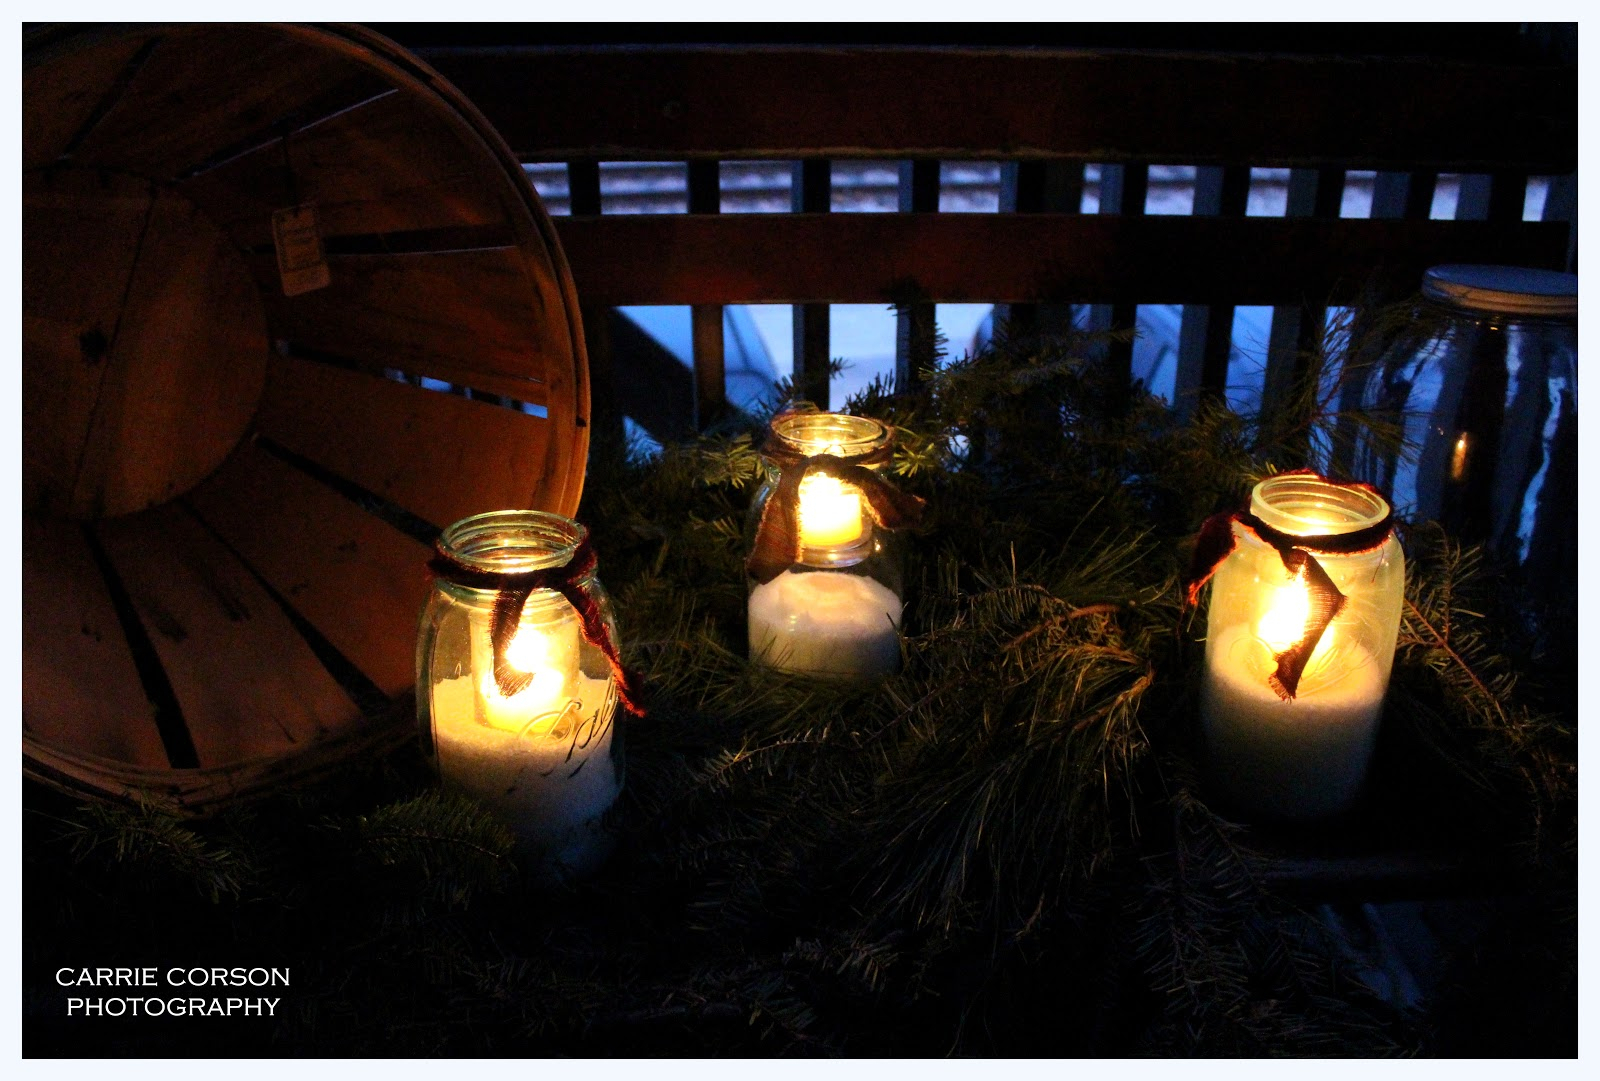 The Corson Cottage Photography My Favorite Images Of